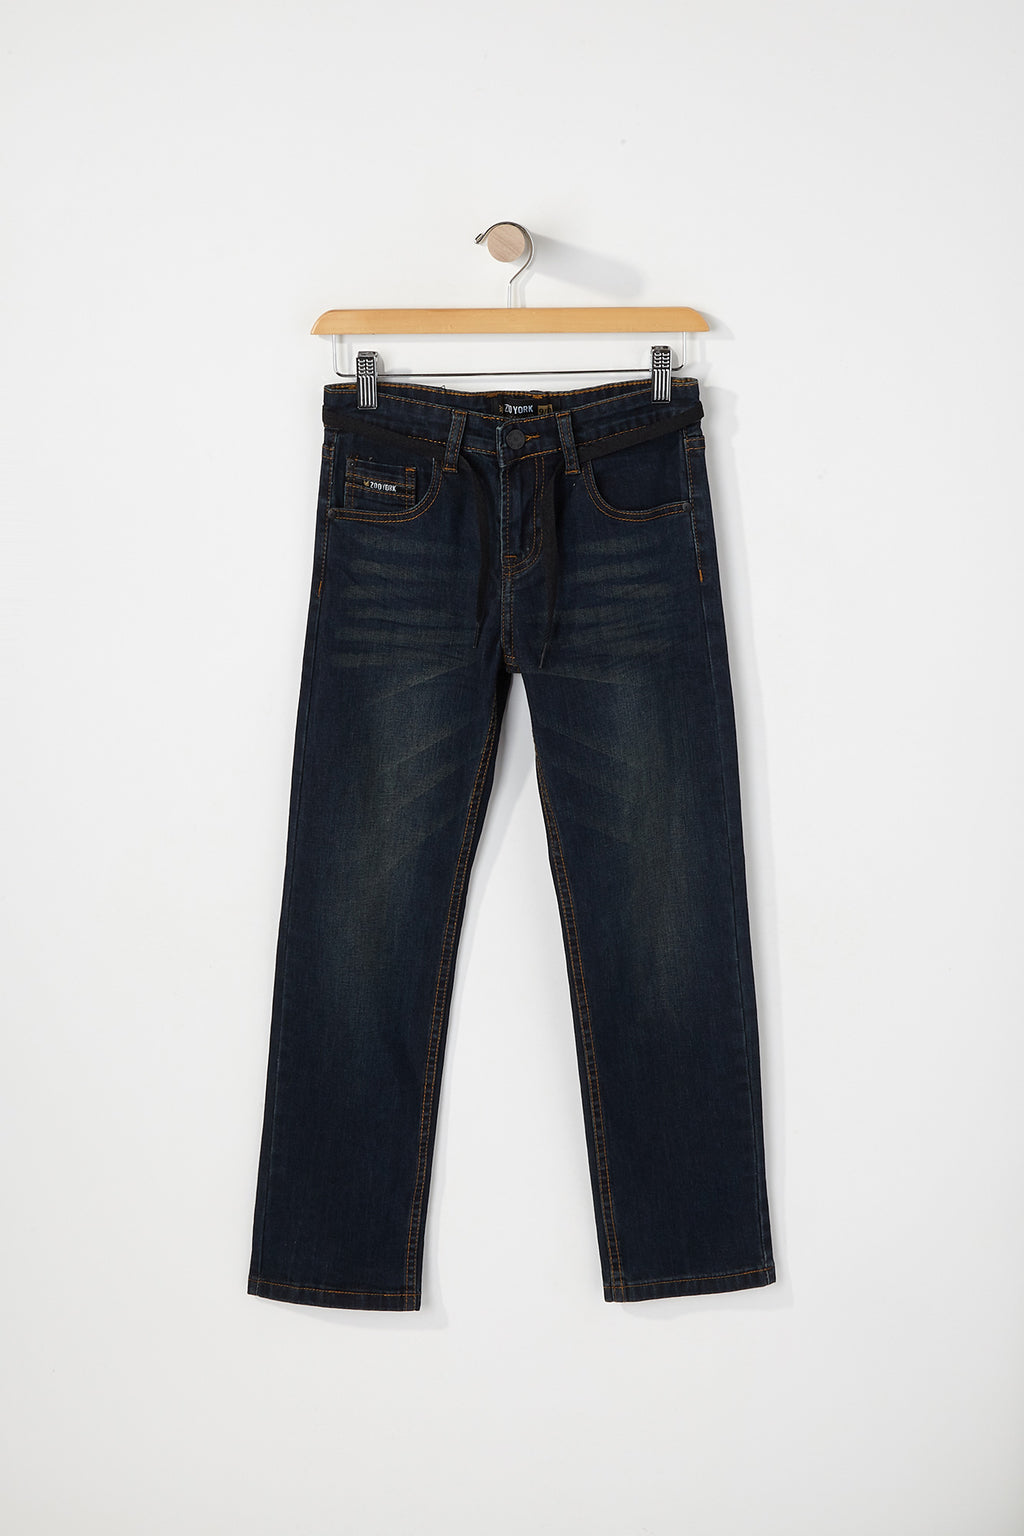 Zoo York Boys Dark Wash Slim Jeans